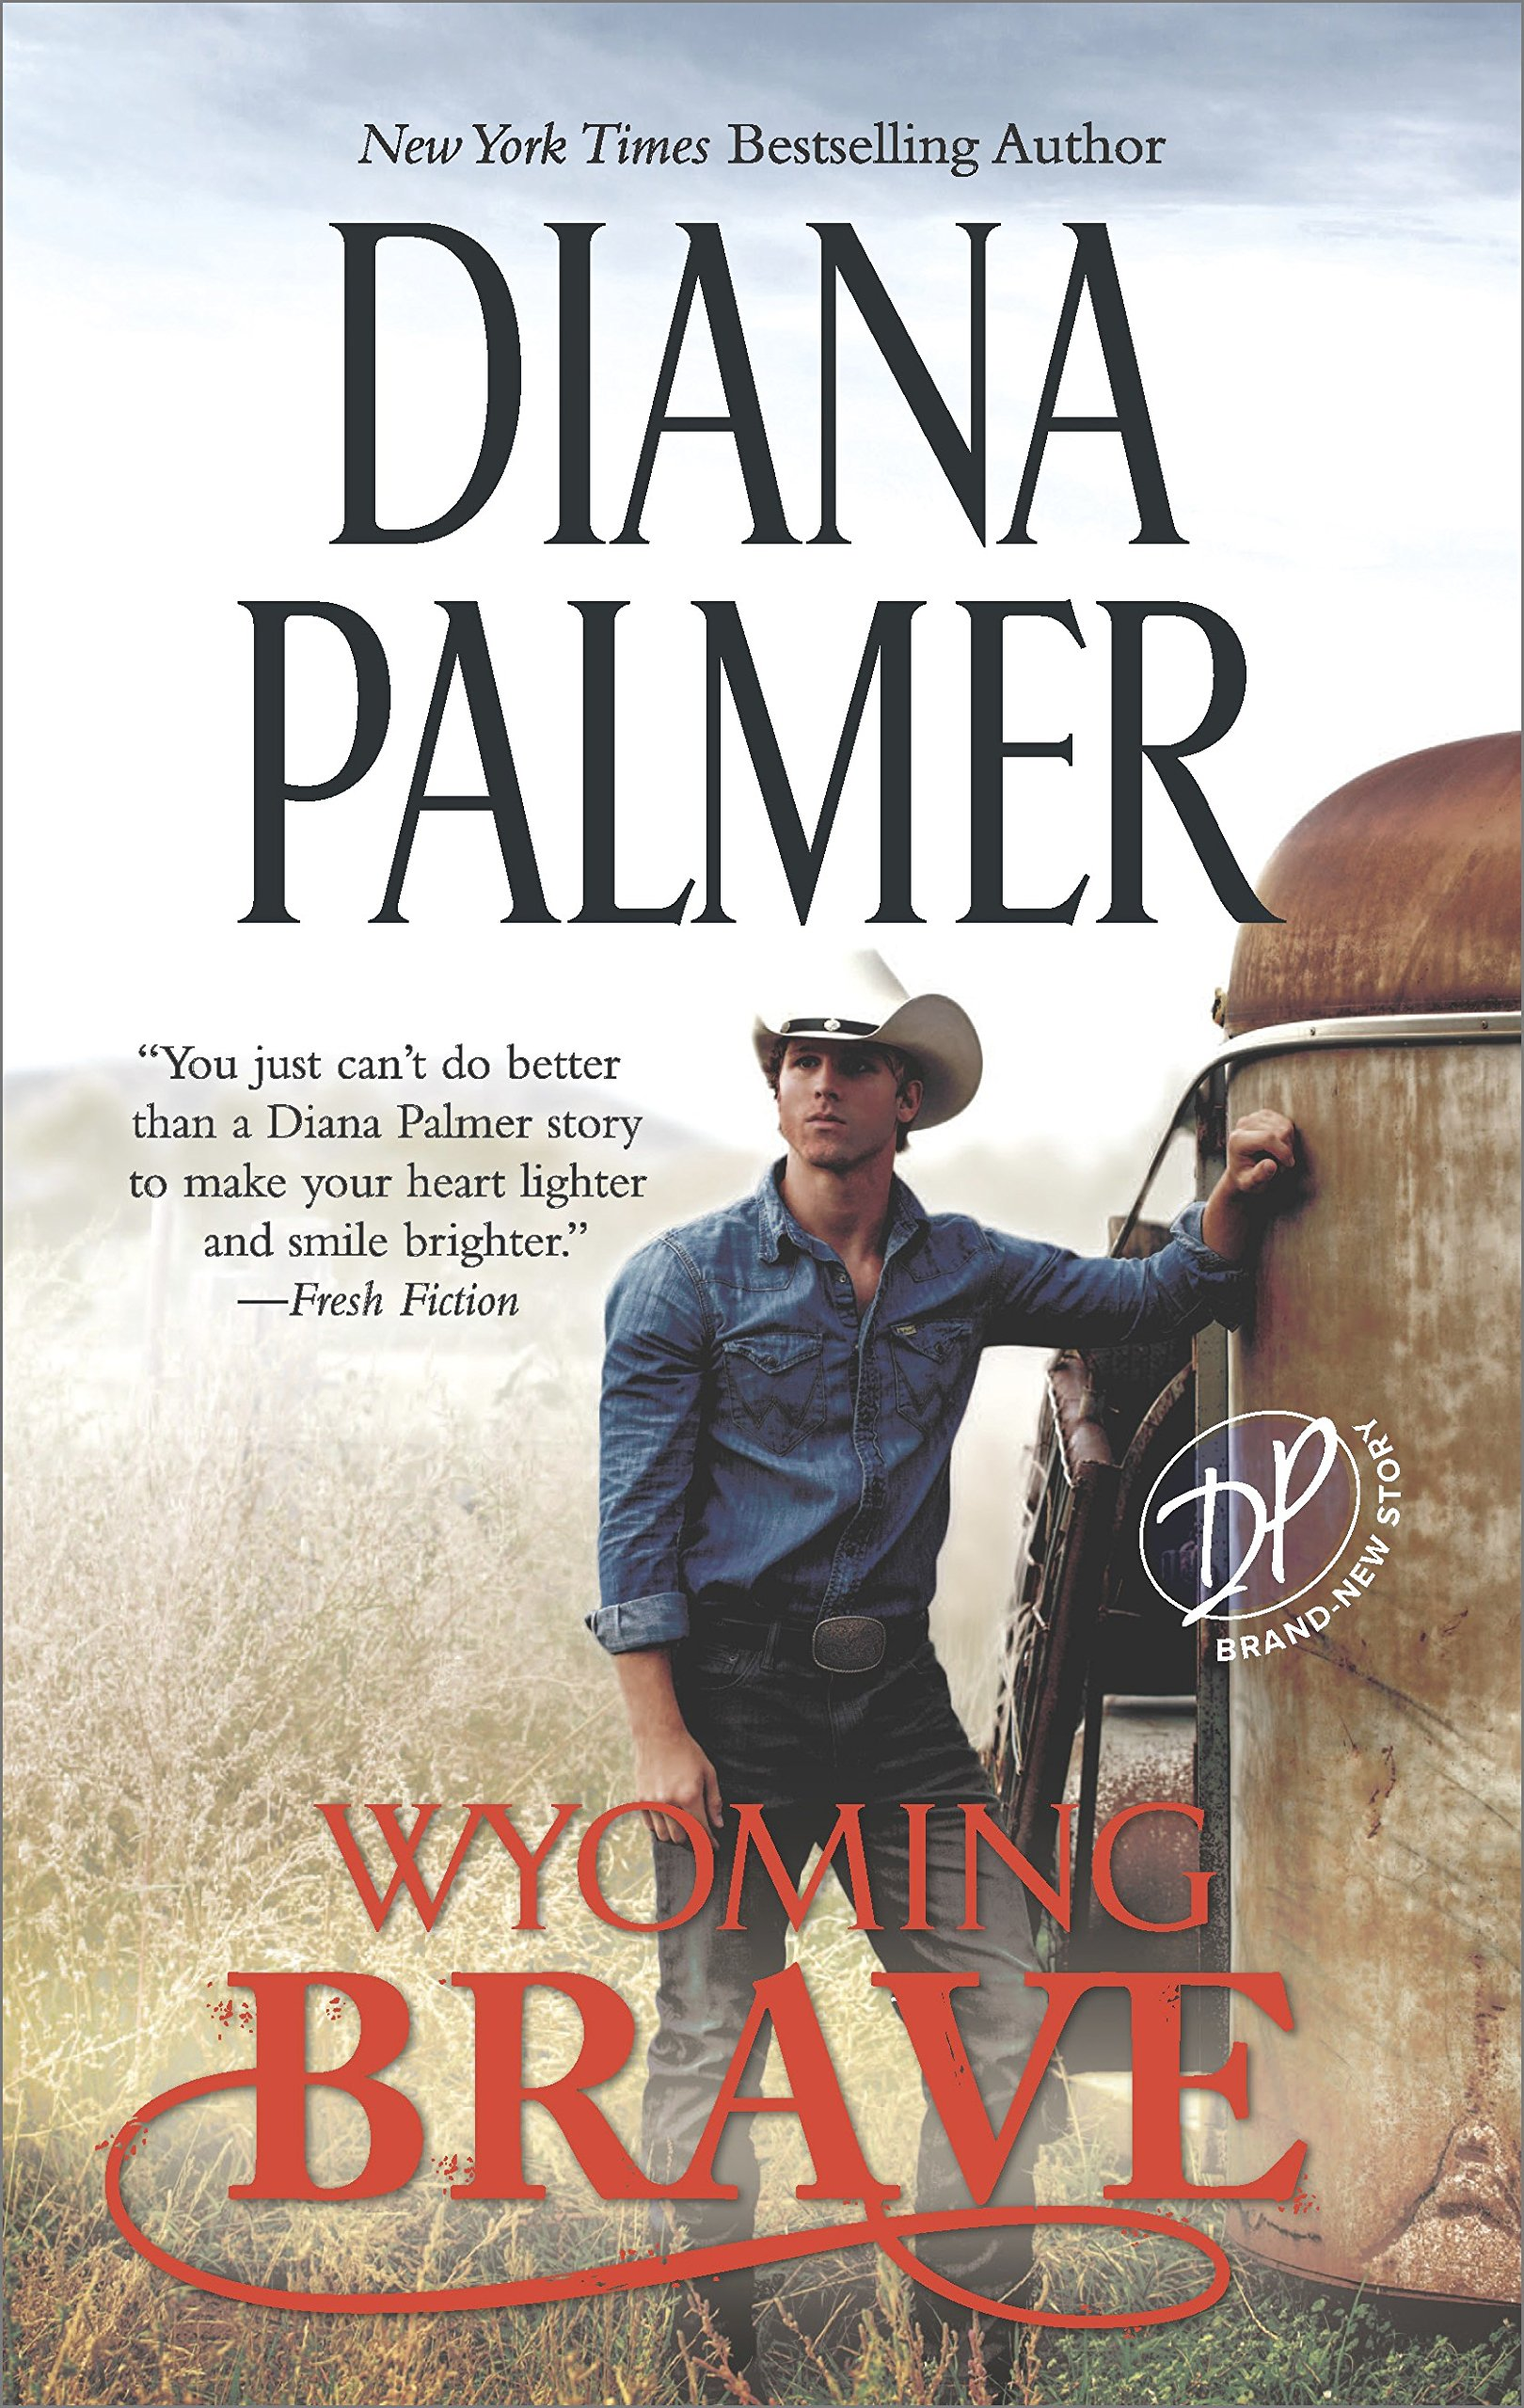 Wyoming Brave York Times bestseller product image